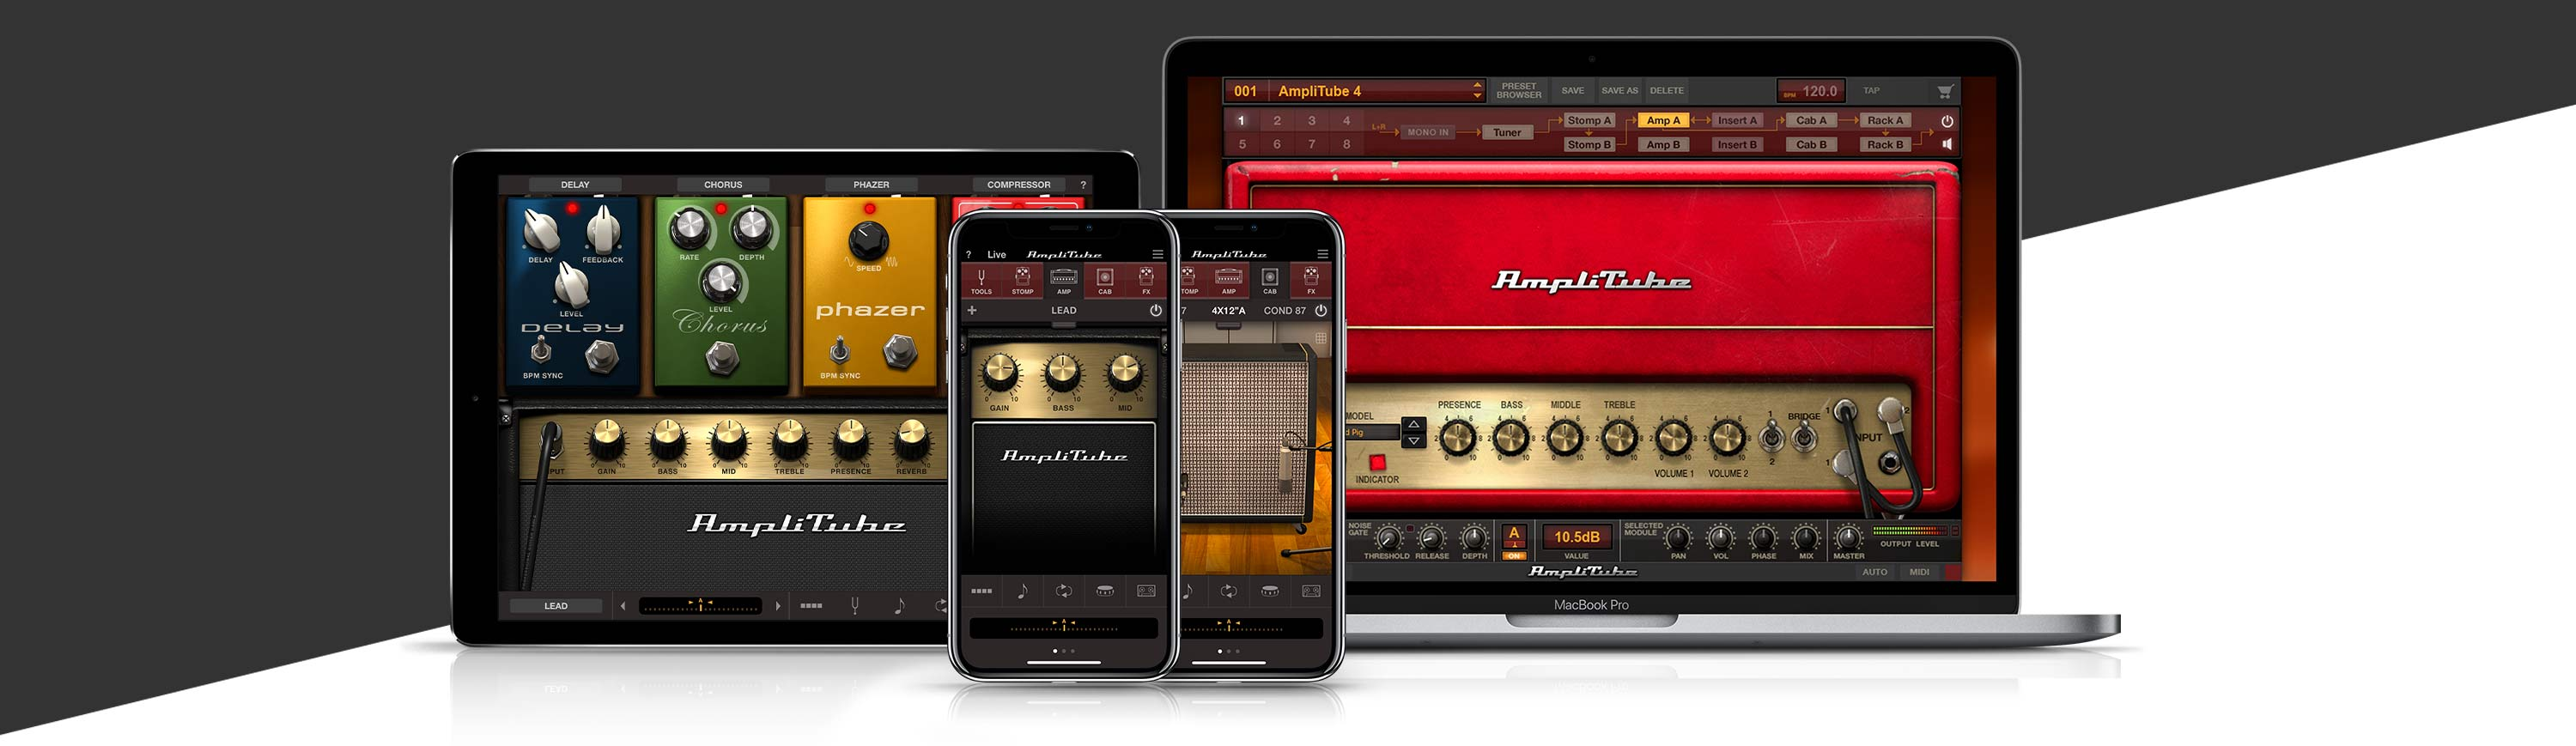 iRig Micro mini guitar amp apps